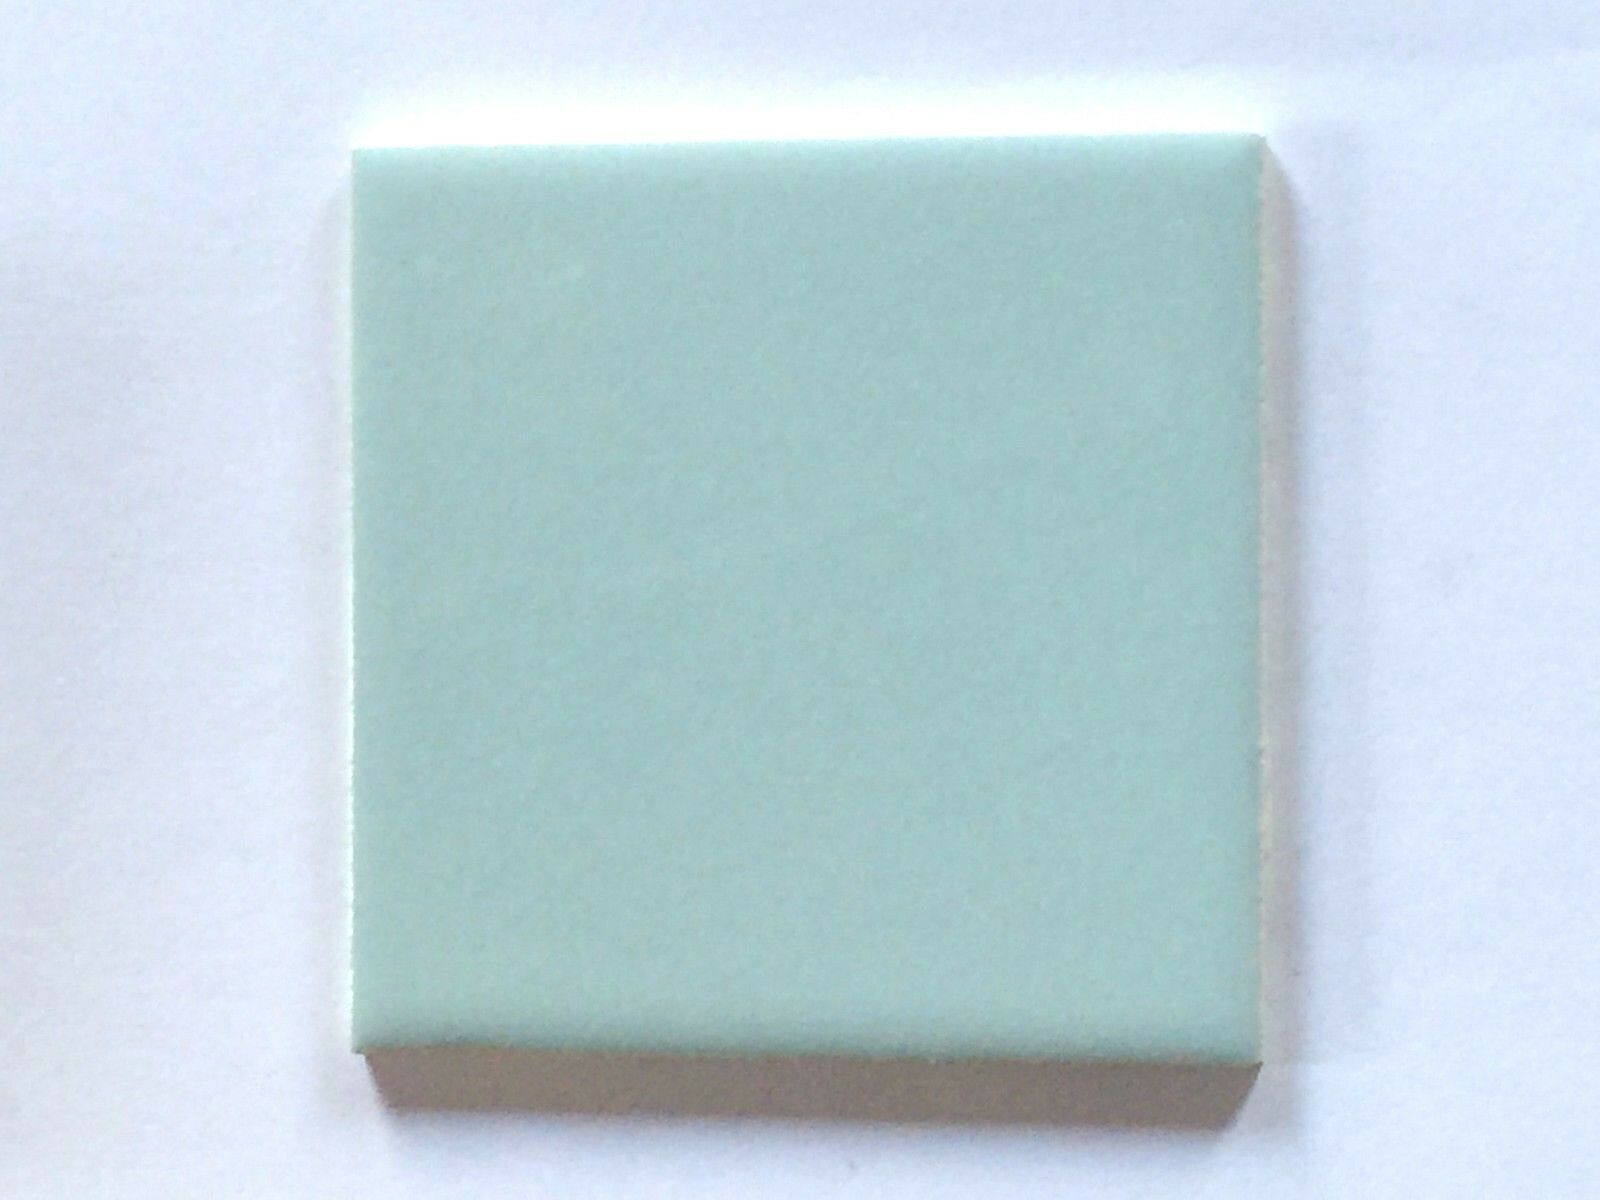 Z-834) 1 PC Vintage Ceramic Tile Wall 4 1/4 Glossy Bright Baby Blue ...